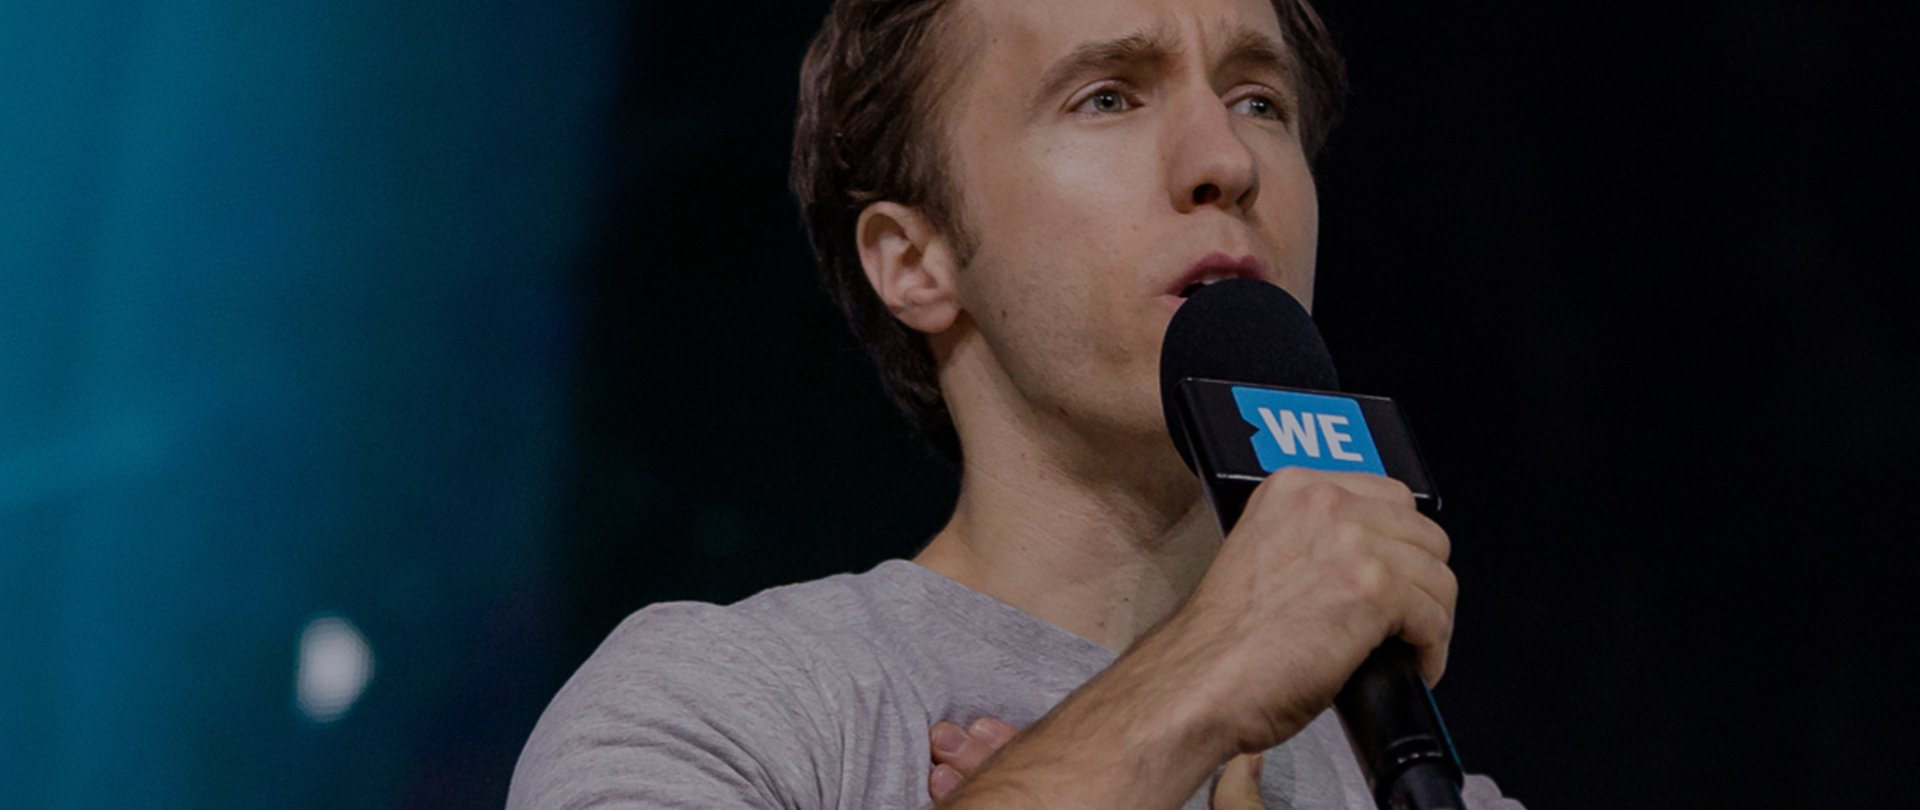 speakers-craig-kielburger-banner.jpg